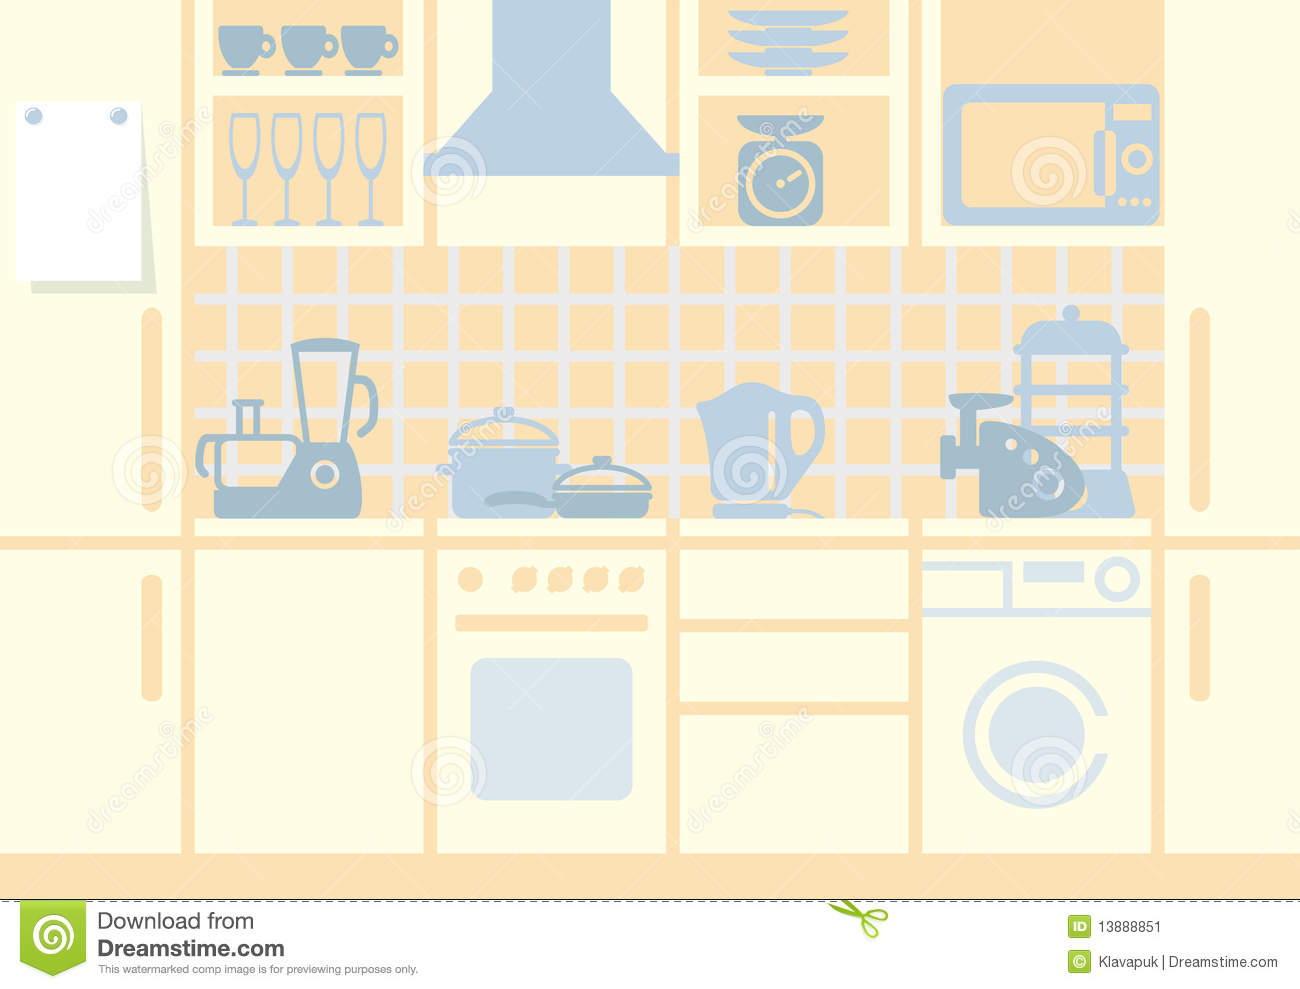 Royalty Free Stock Photos Kitchen Fittings Appliances Image4029178 additionally Stock Illustration Flat Design Cooking Kitchen Vector Icon Collection Set Related Icons Isolated Image49260522 furthermore 142215300707497954 additionally Royalty Free Stock Photo Unique Kitchen Cabi  Dish Storage Image5844955 also 7476 Rf23j9011sg Samsung Black Stainless Steel 22 5 Cu Ft French Door Refrigerator. on design refrigerator sign